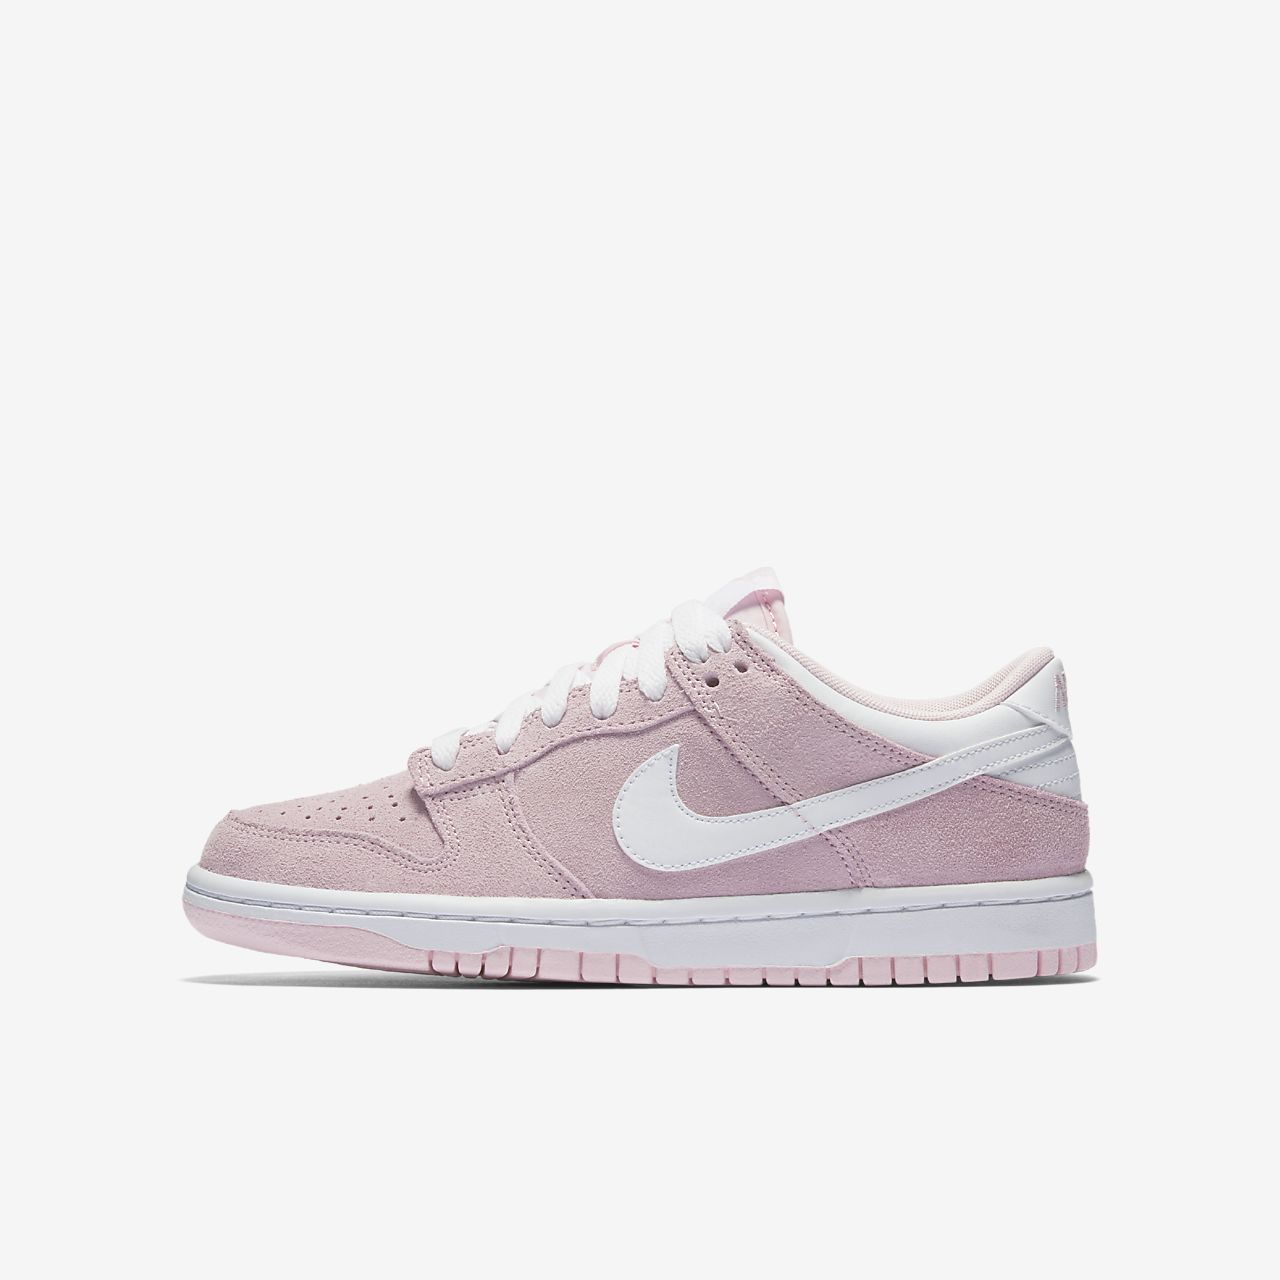 ... Chaussure Nike Dunk Low pour Fille